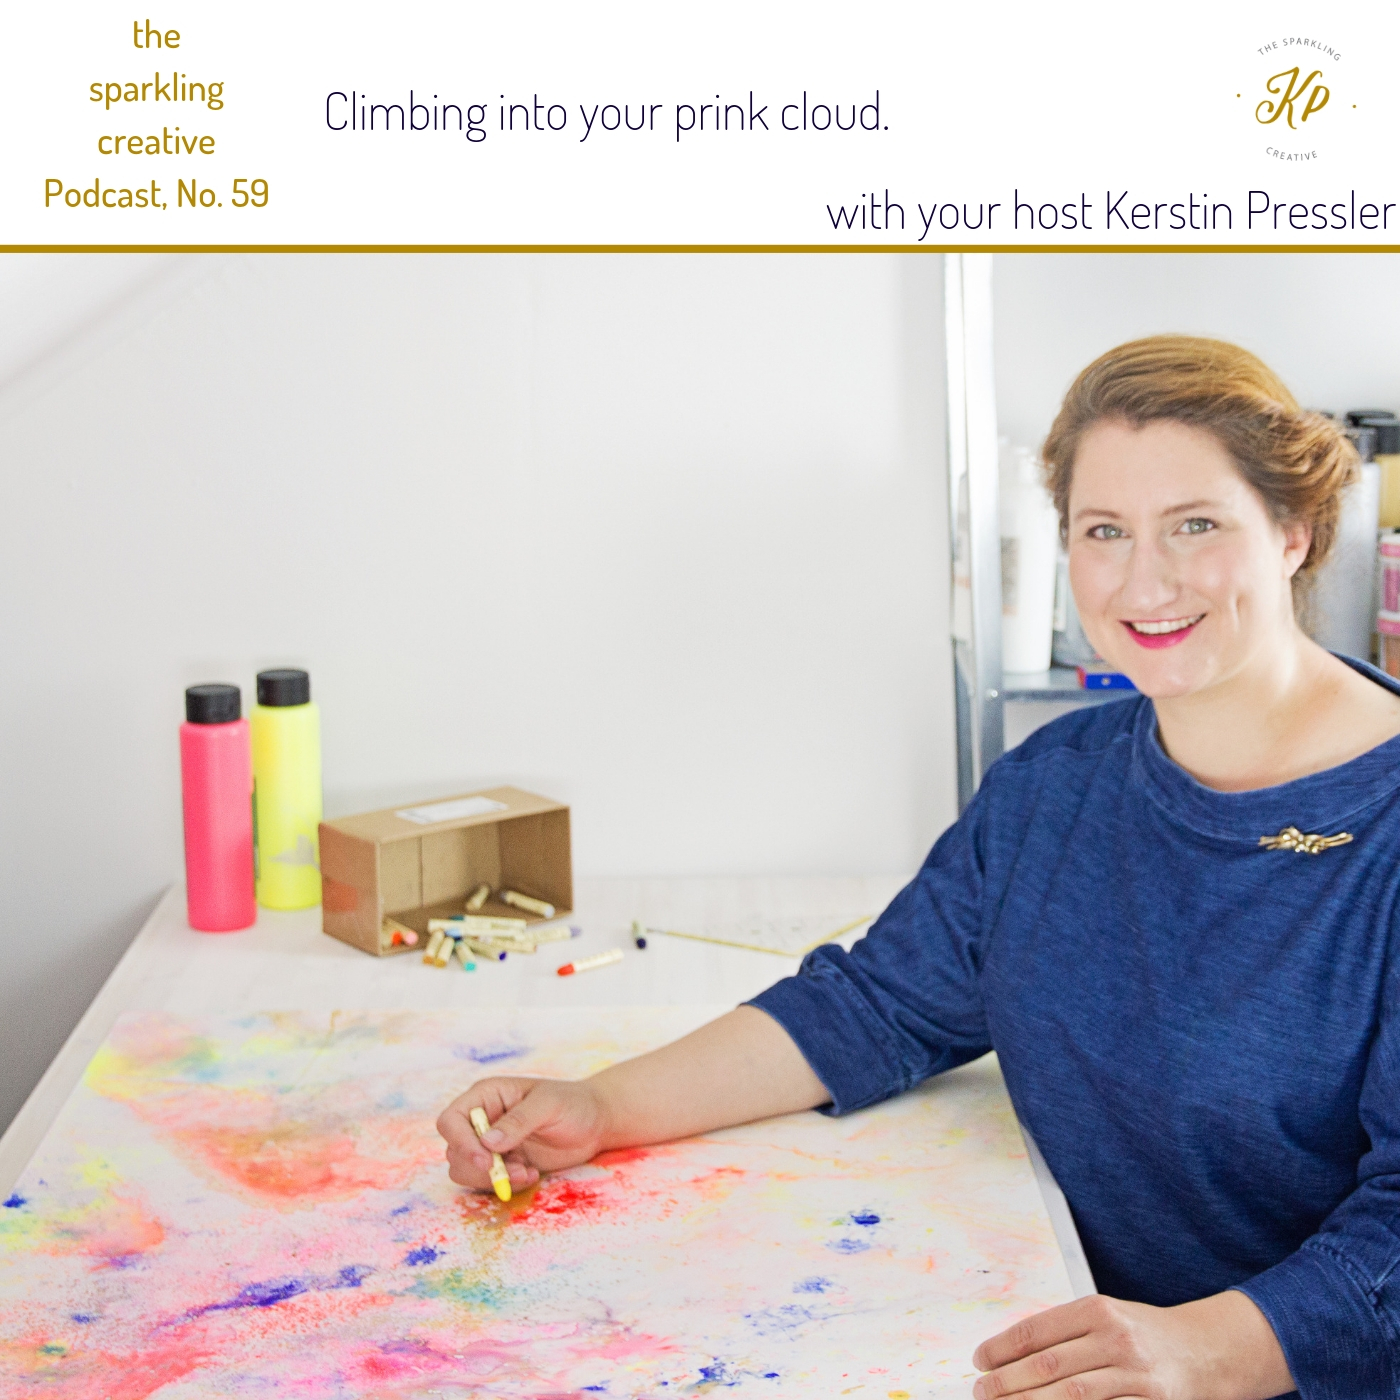 the sparkling creative Podcast,  Episode 59: Climbing into your prink cloud. www.kerstinpressler.com/blog-2/episode59